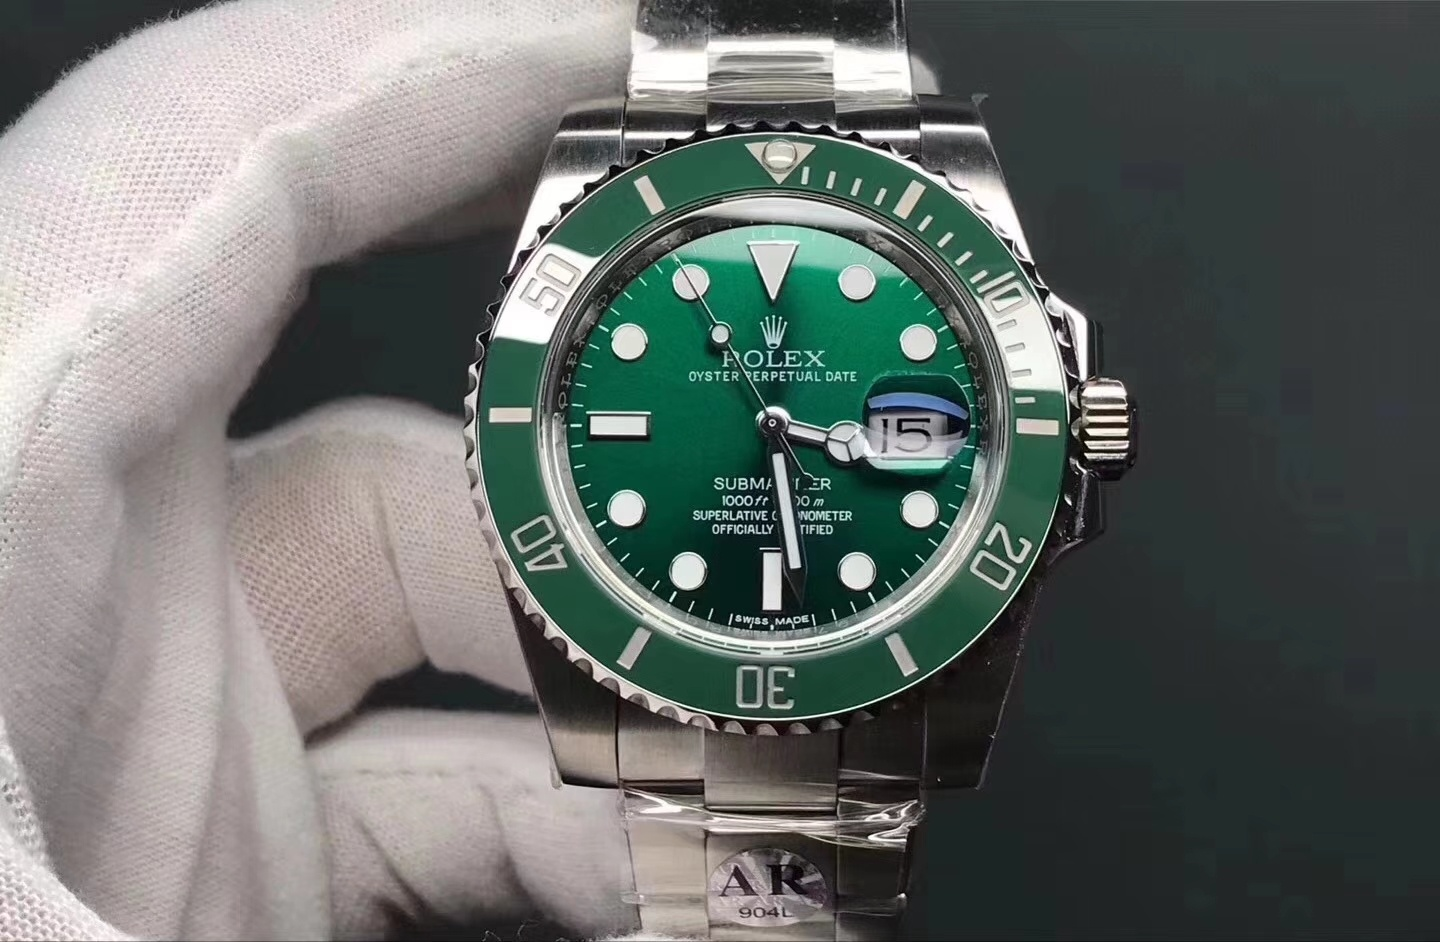 Where can I find Chinese fake watch wholesalers? I want to sell in